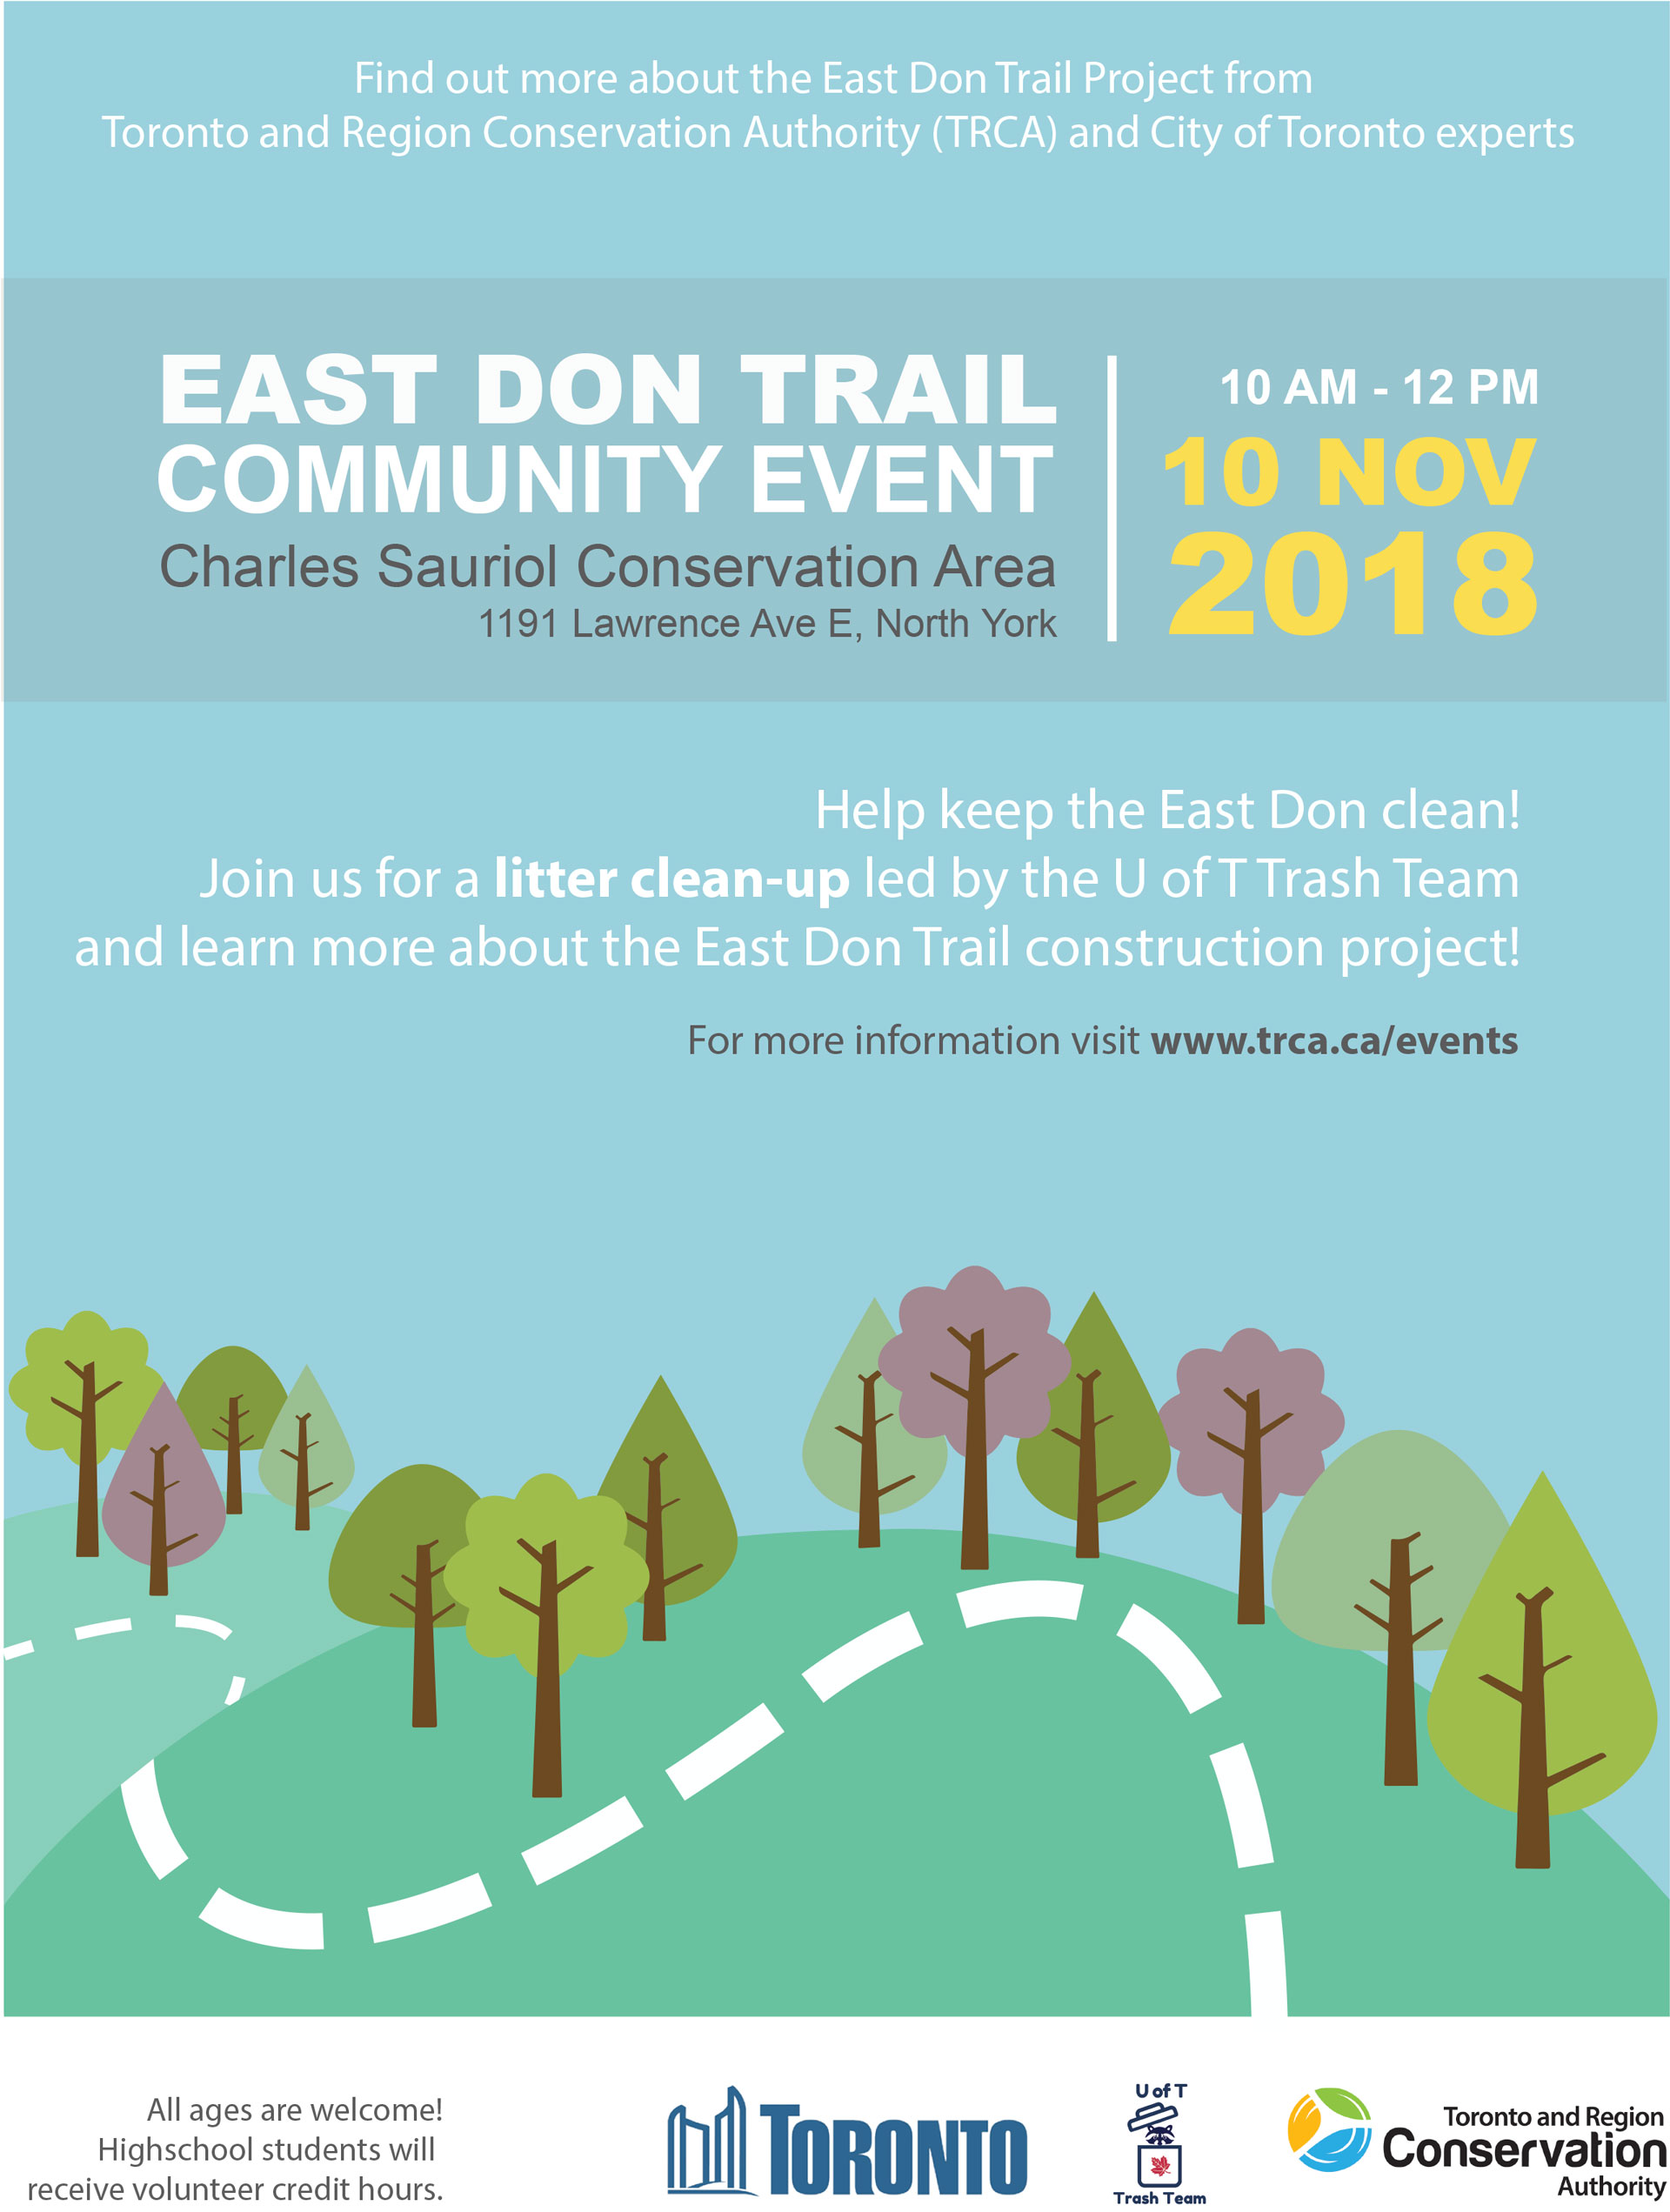 East Don Trail Community Event Poster